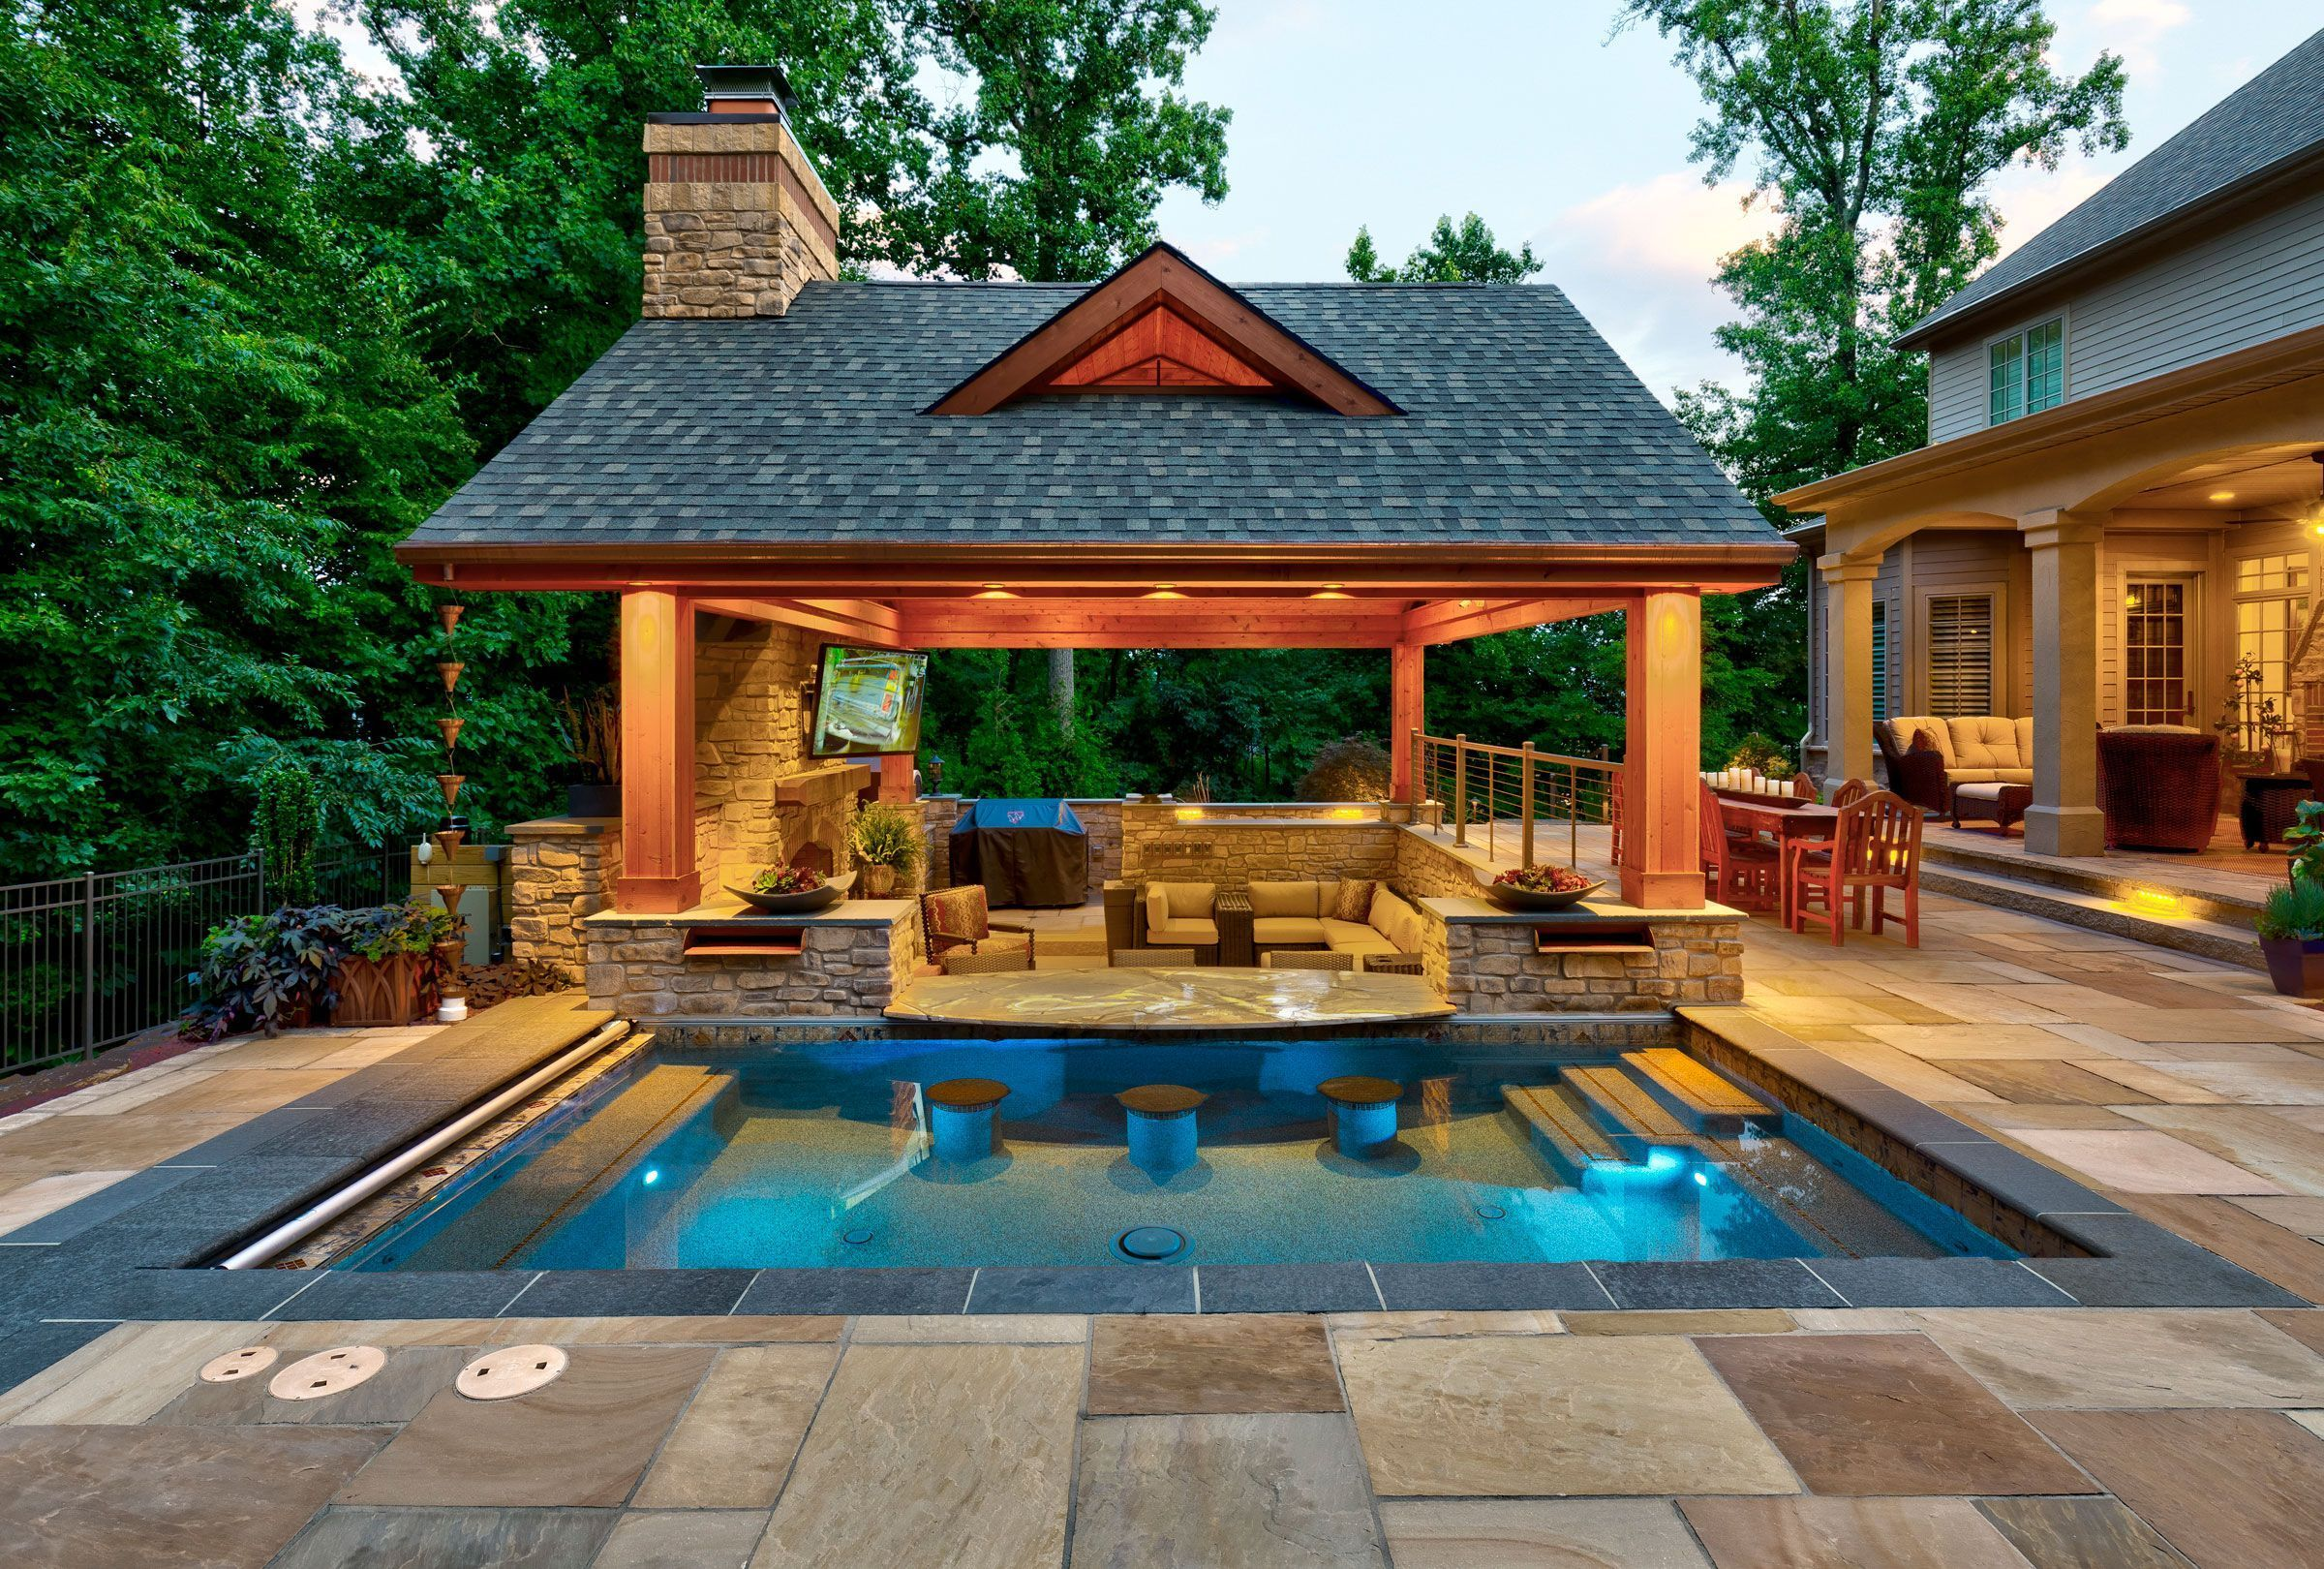 Paradise Outdoor Kitchens For Entertaining Guests Outdoor Living Patios Pool House Designs Small Backyard Pools